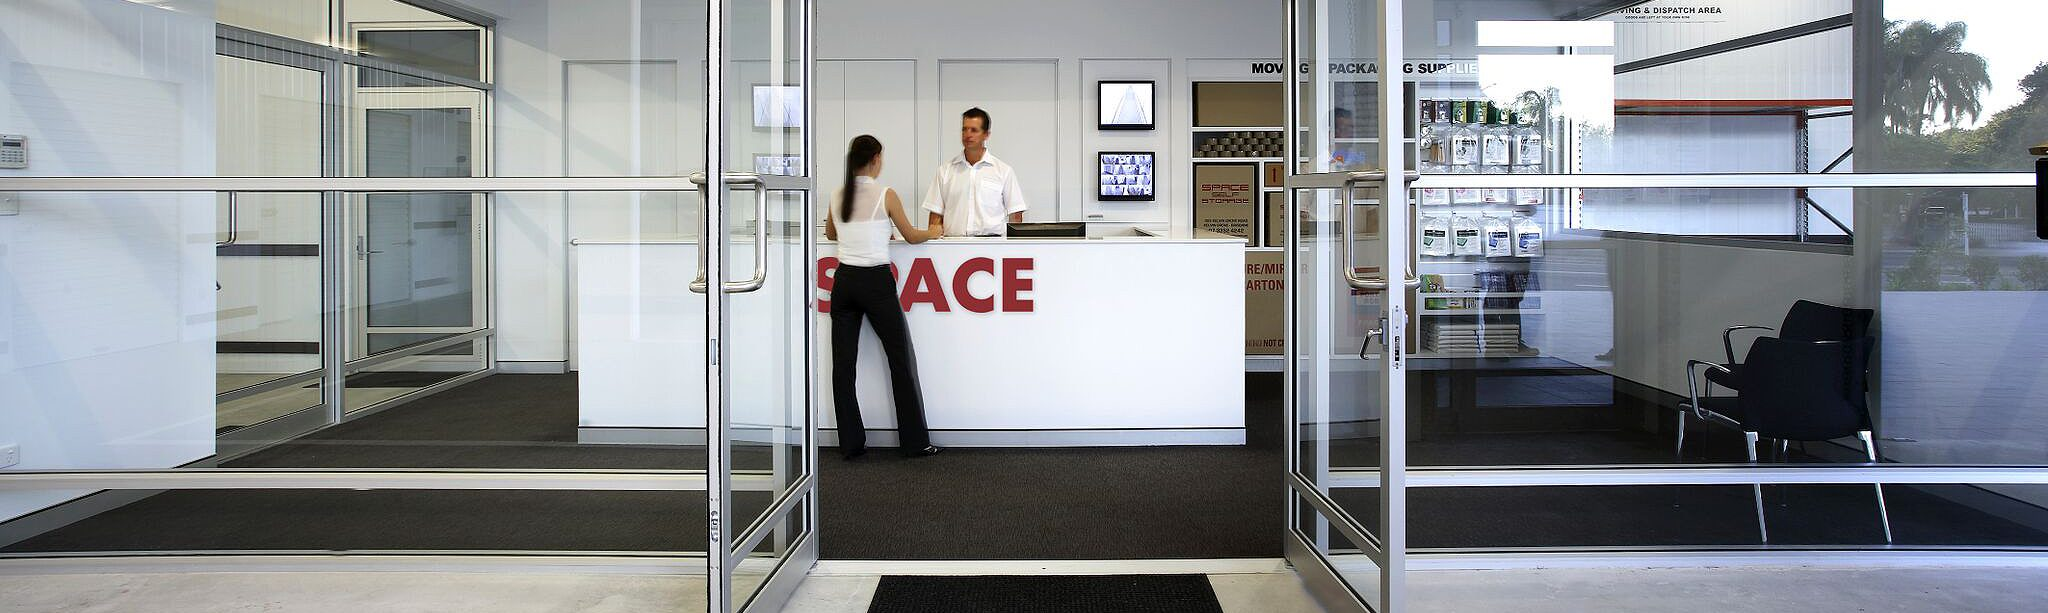 Space Self Storage Lobby